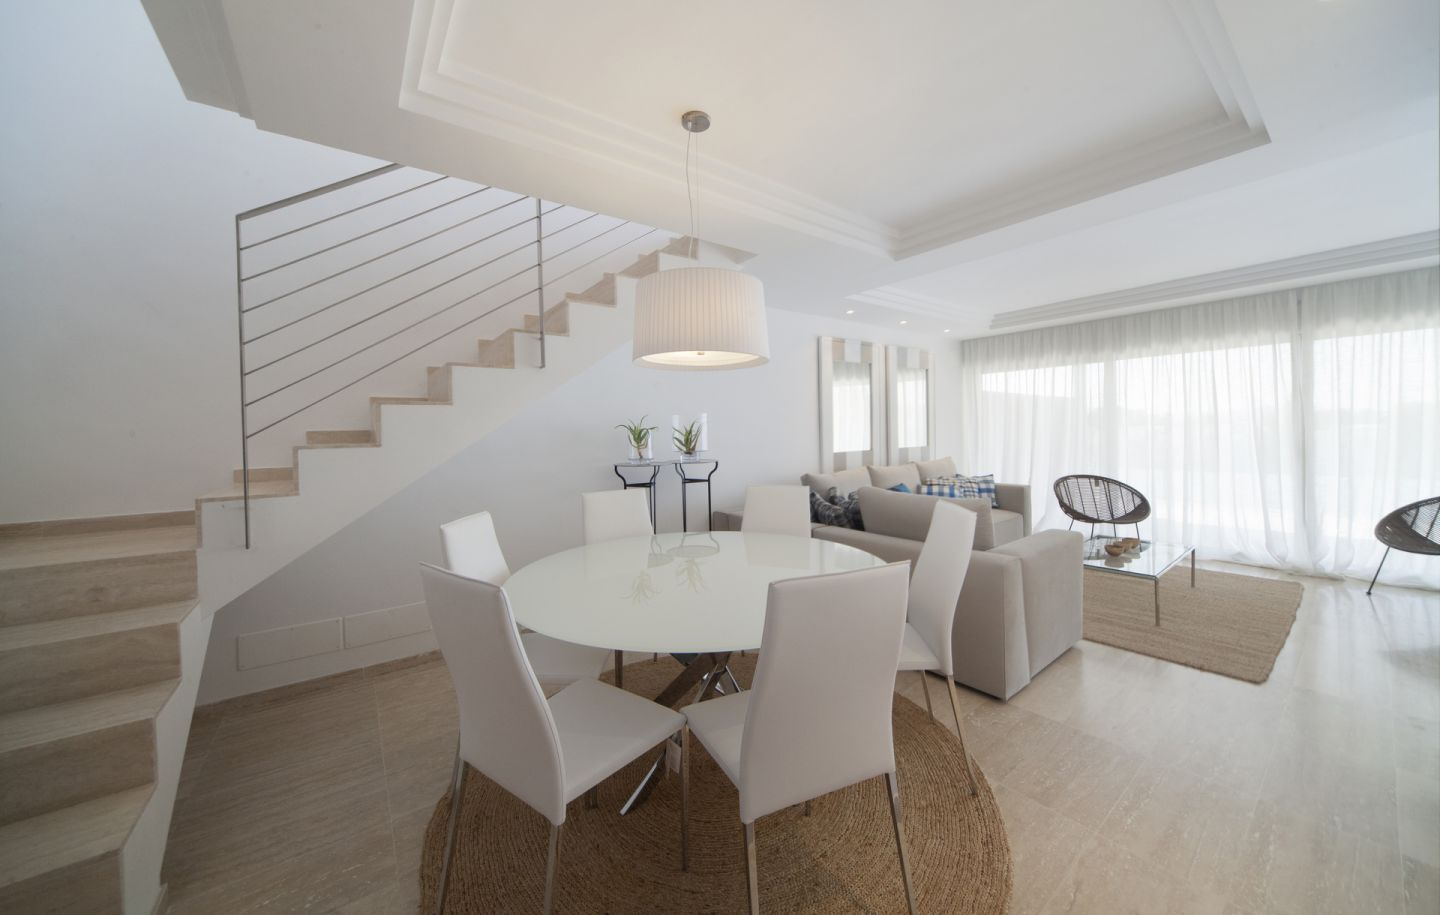 3 Bed Penthouse for sale in PUERTO POLLENSA 10